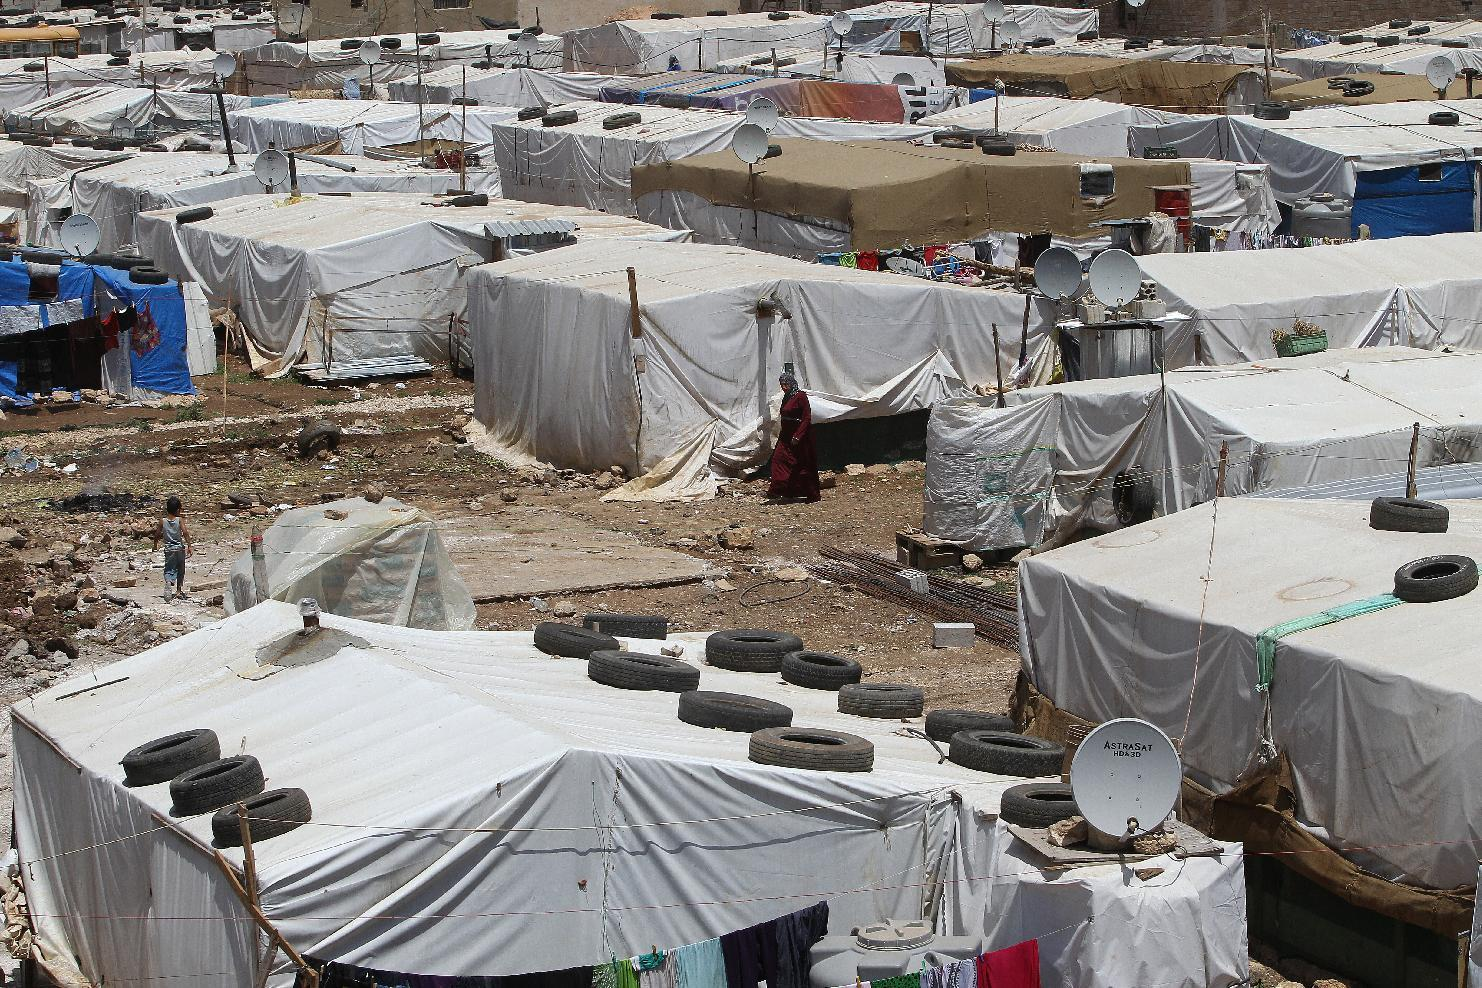 A Syrian refugee woman walks in a makeshift refugee camp in the eastern Lebanese town of Dalhamiyah on May 30, 2014